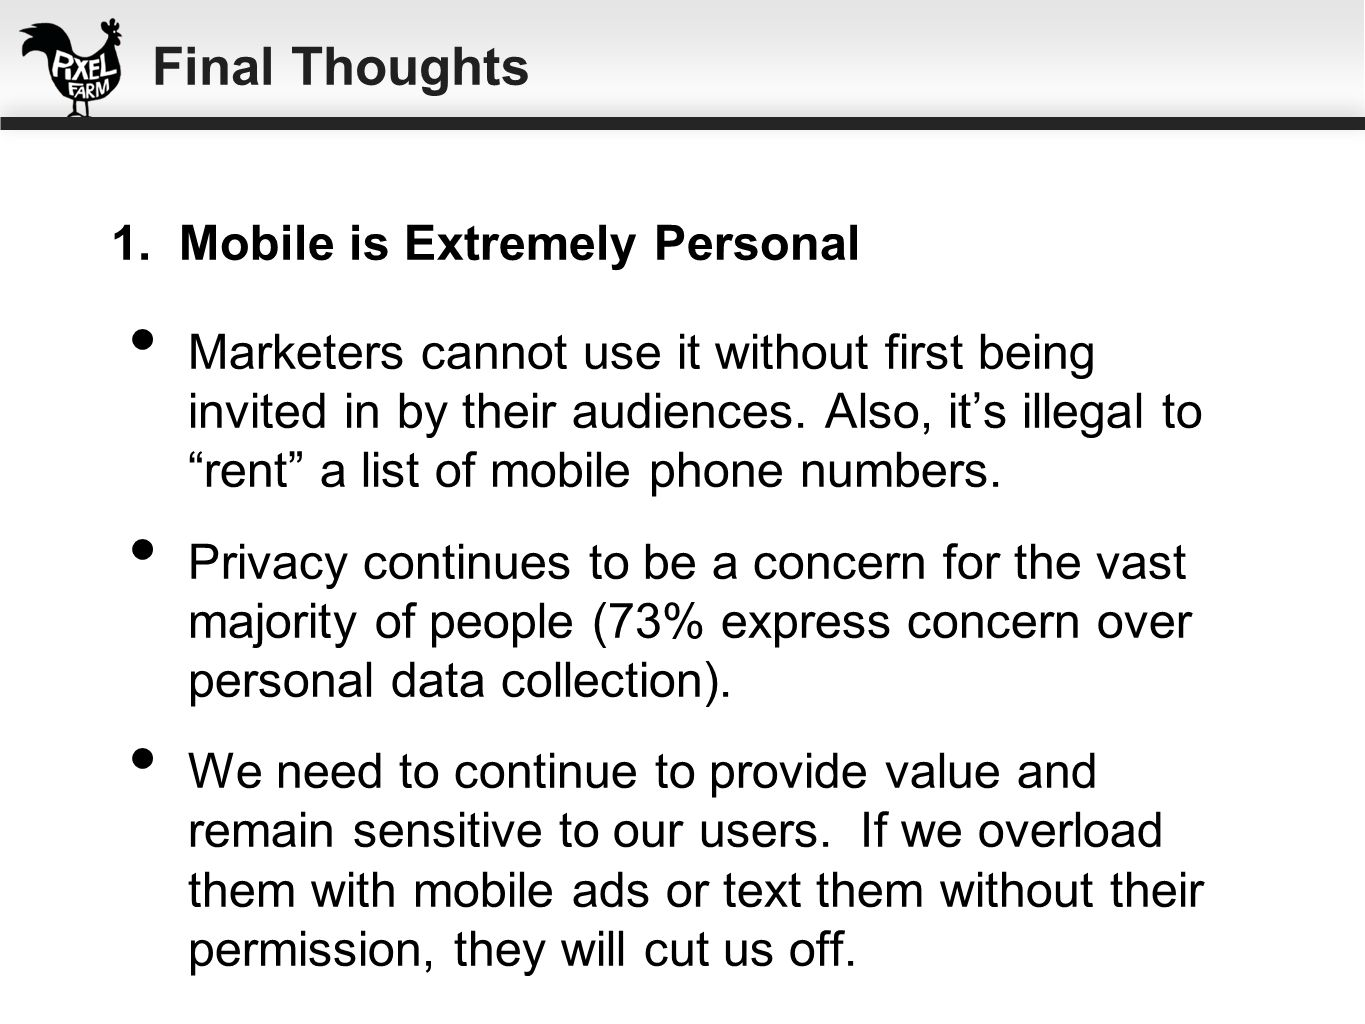 Marketers cannot use it without first being invited in by their audiences. Also, its illegal to rent a list of mobile phone numbers. Privacy continues